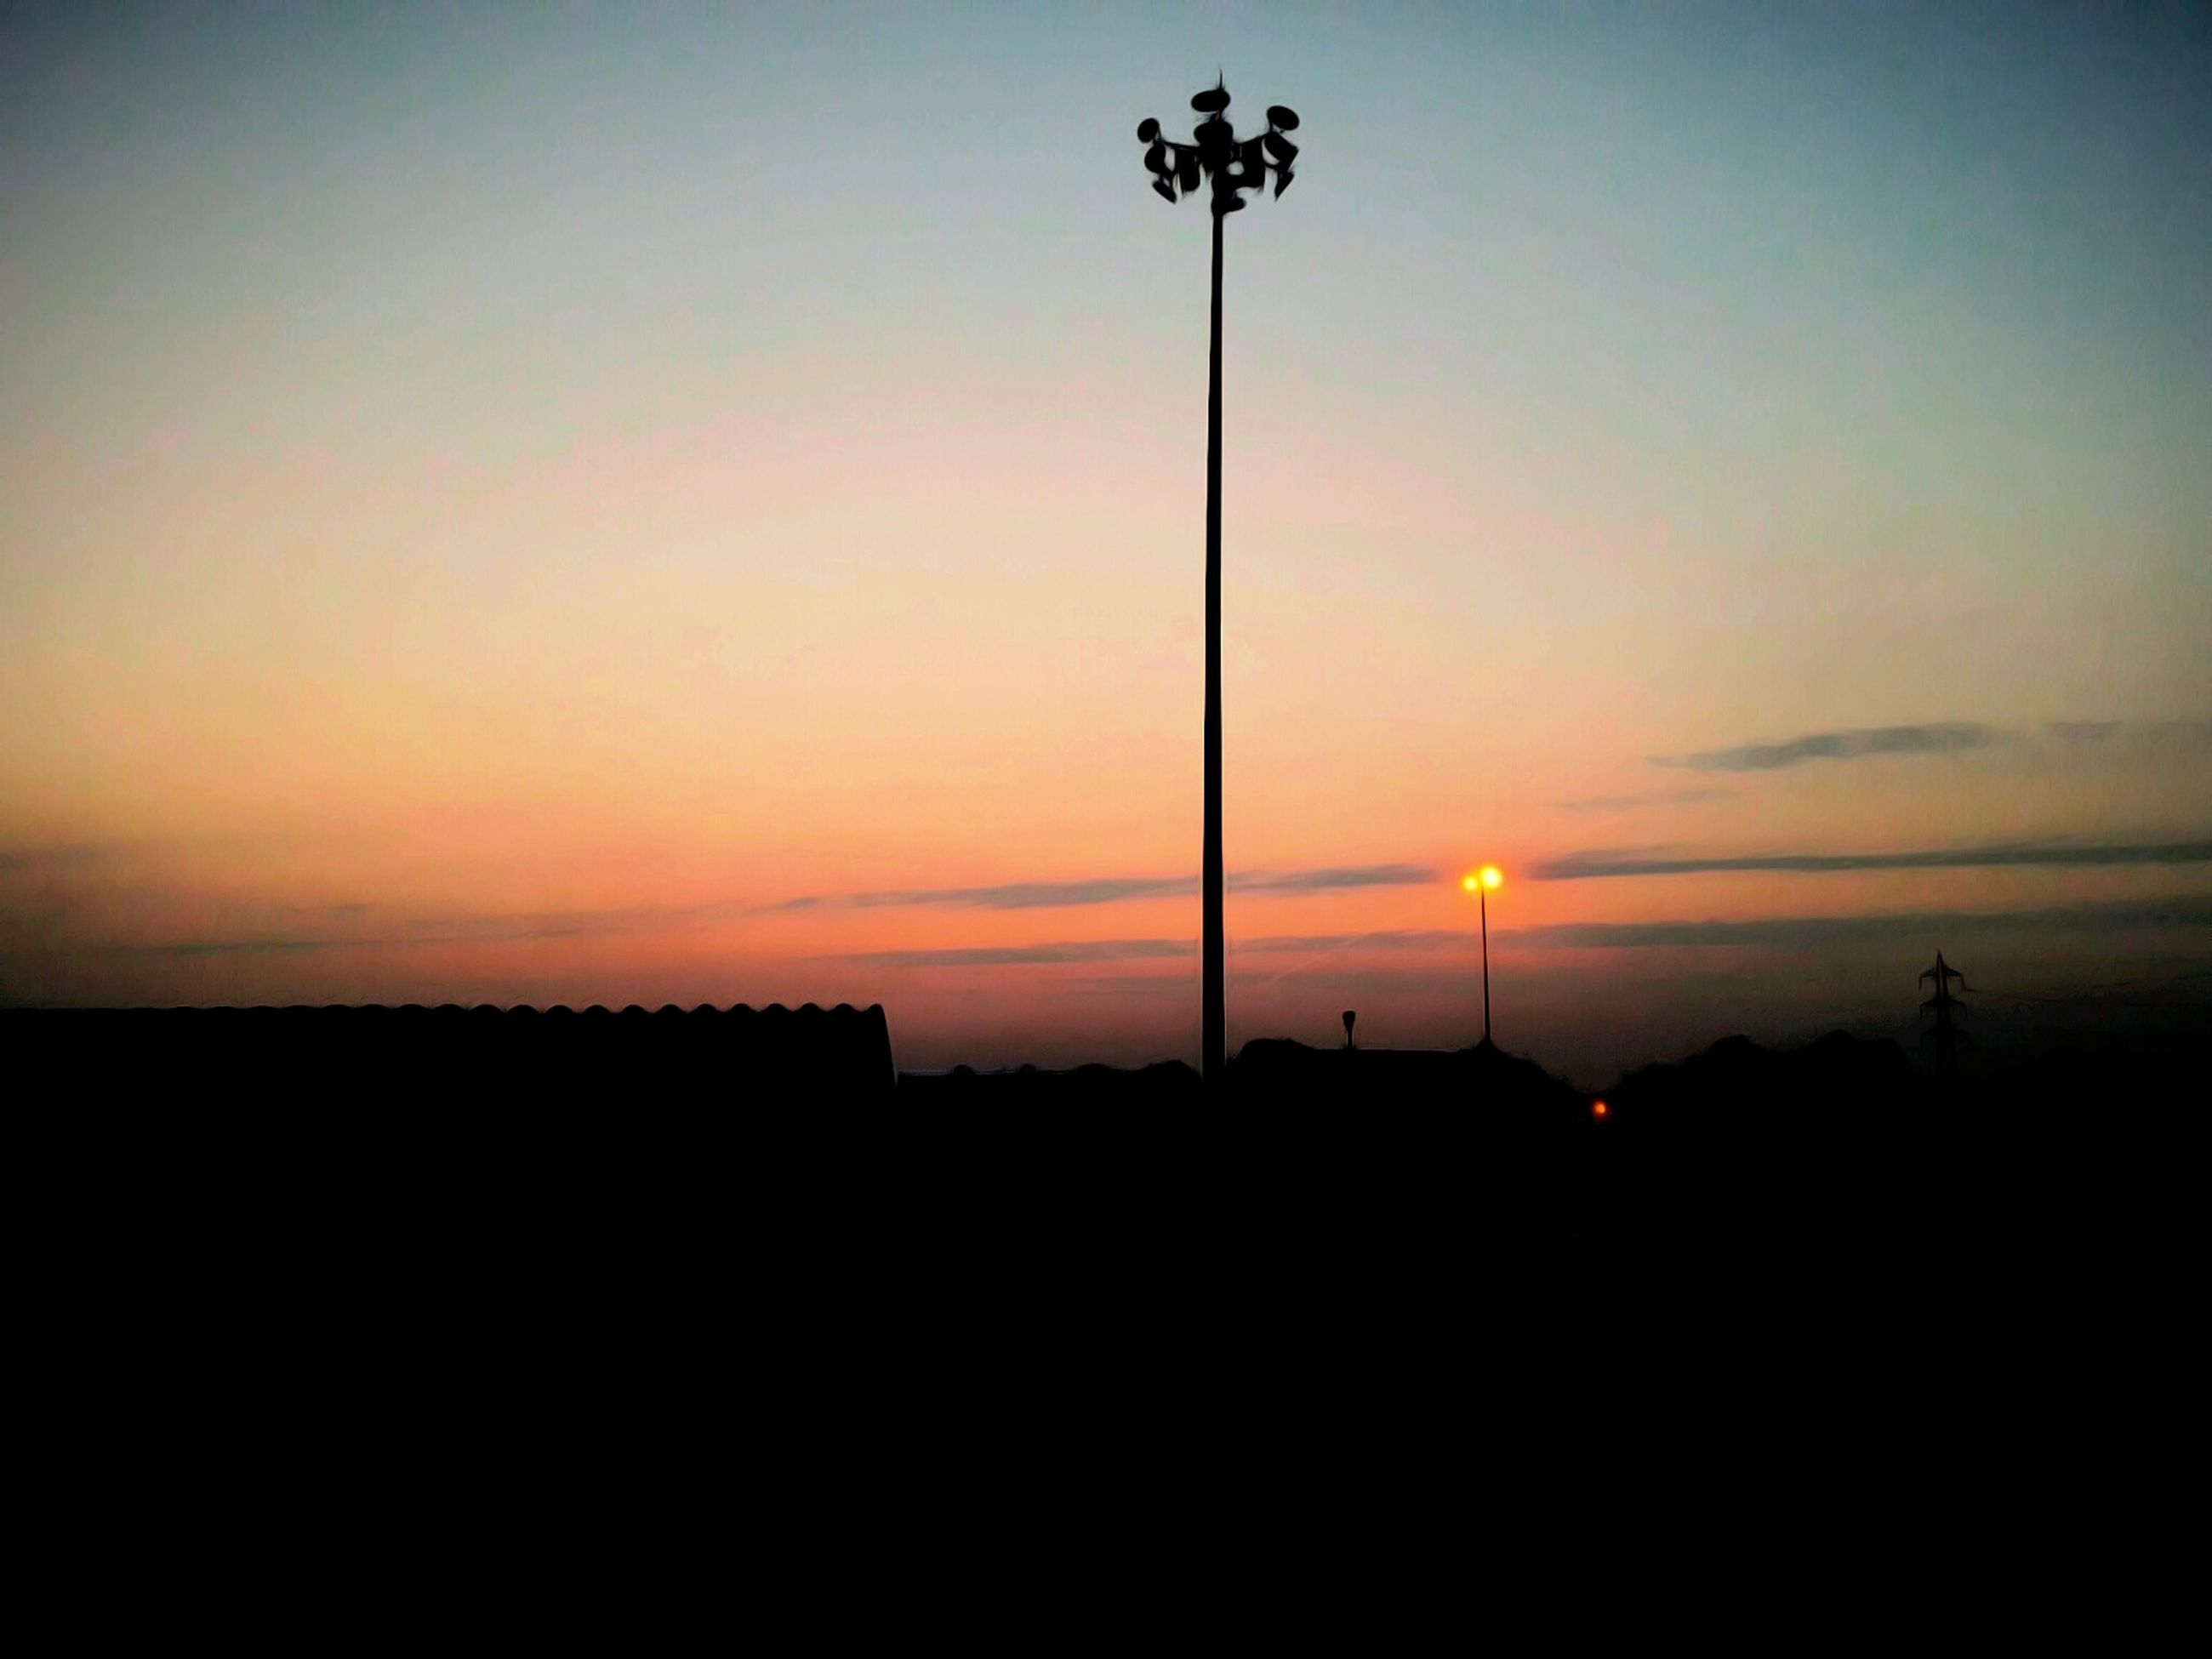 sunset, silhouette, street light, sky, orange color, copy space, lighting equipment, sun, tranquility, beauty in nature, dark, scenics, tranquil scene, nature, low angle view, outline, outdoors, pole, idyllic, no people